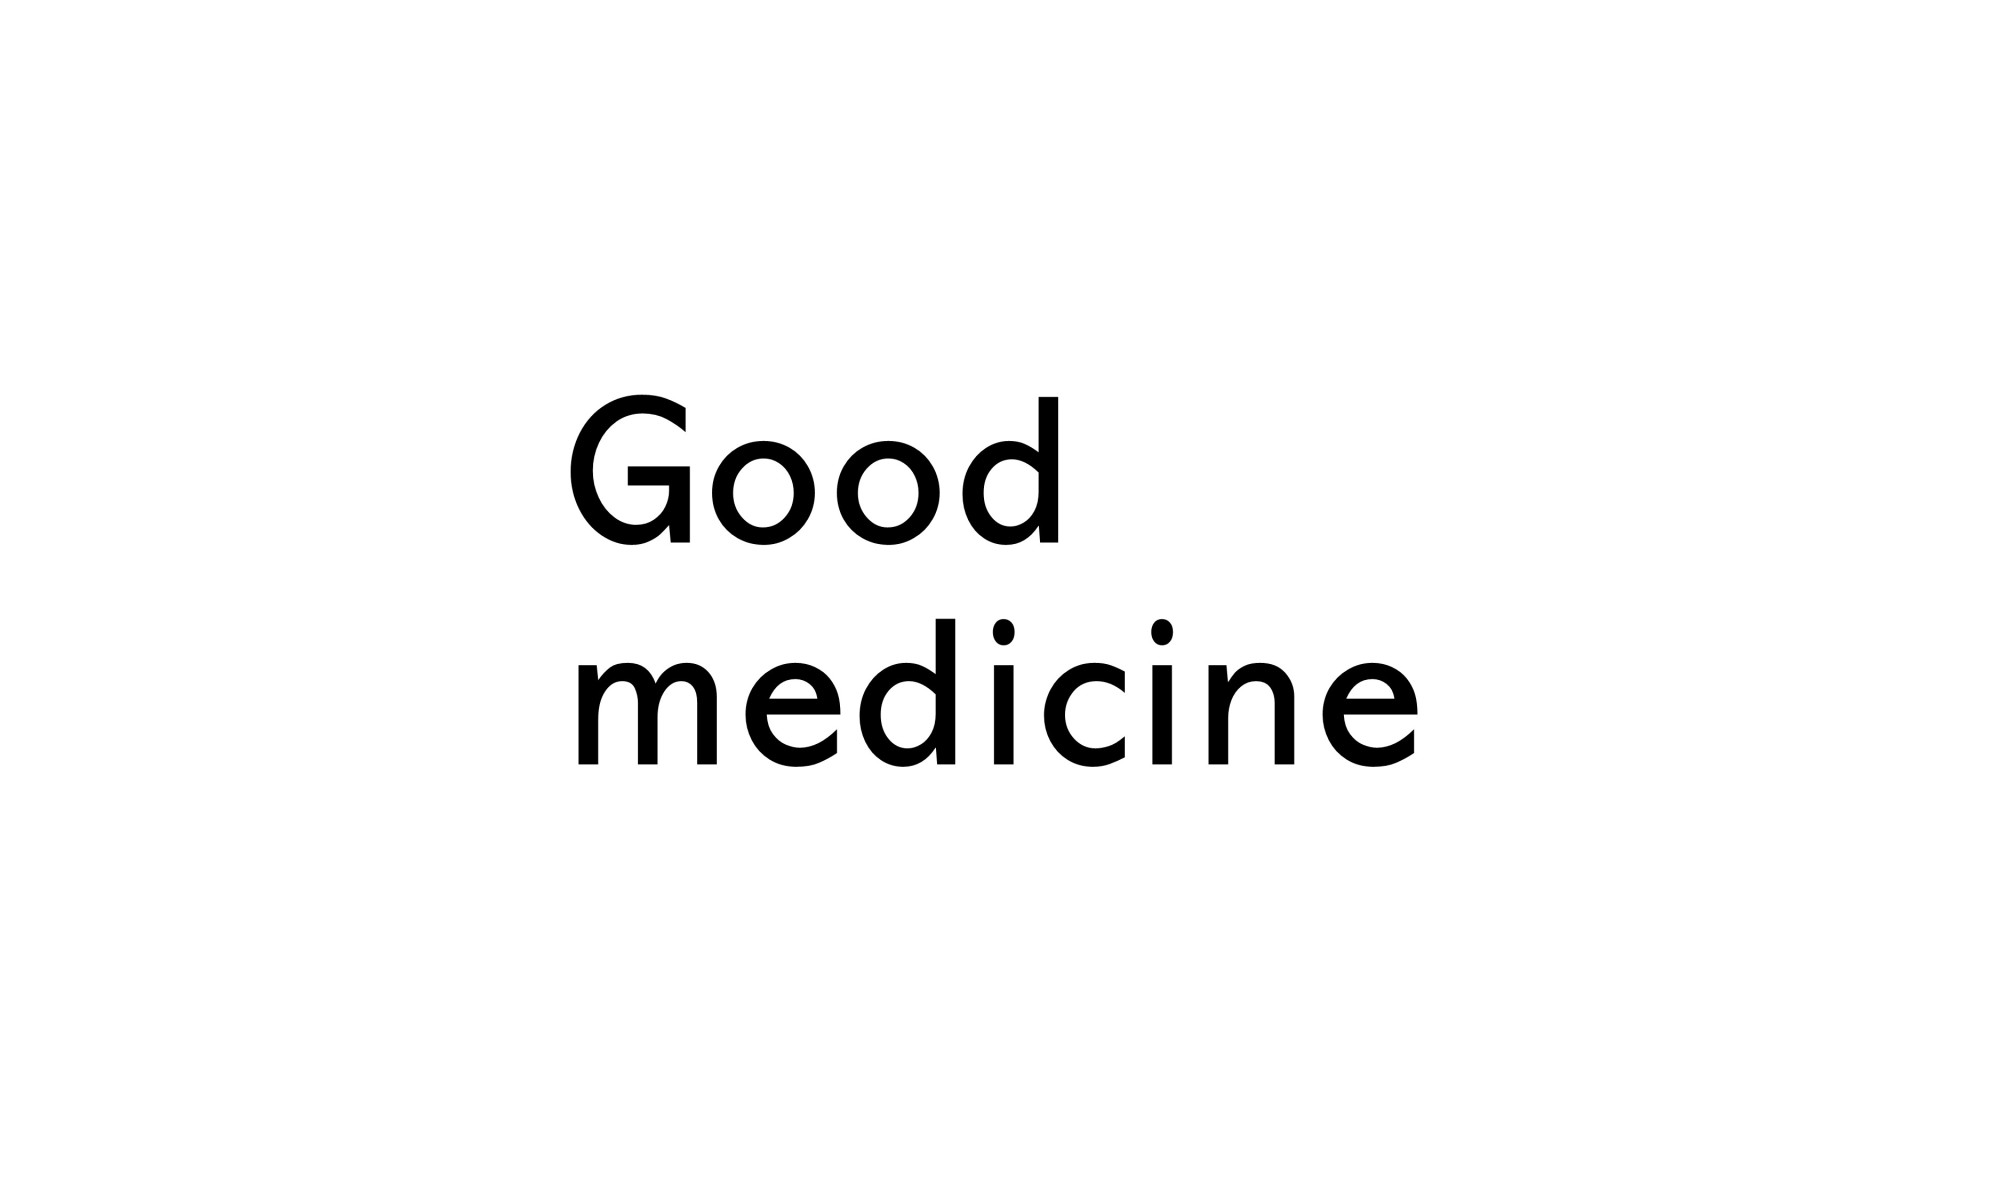 title image text that says Good medicine